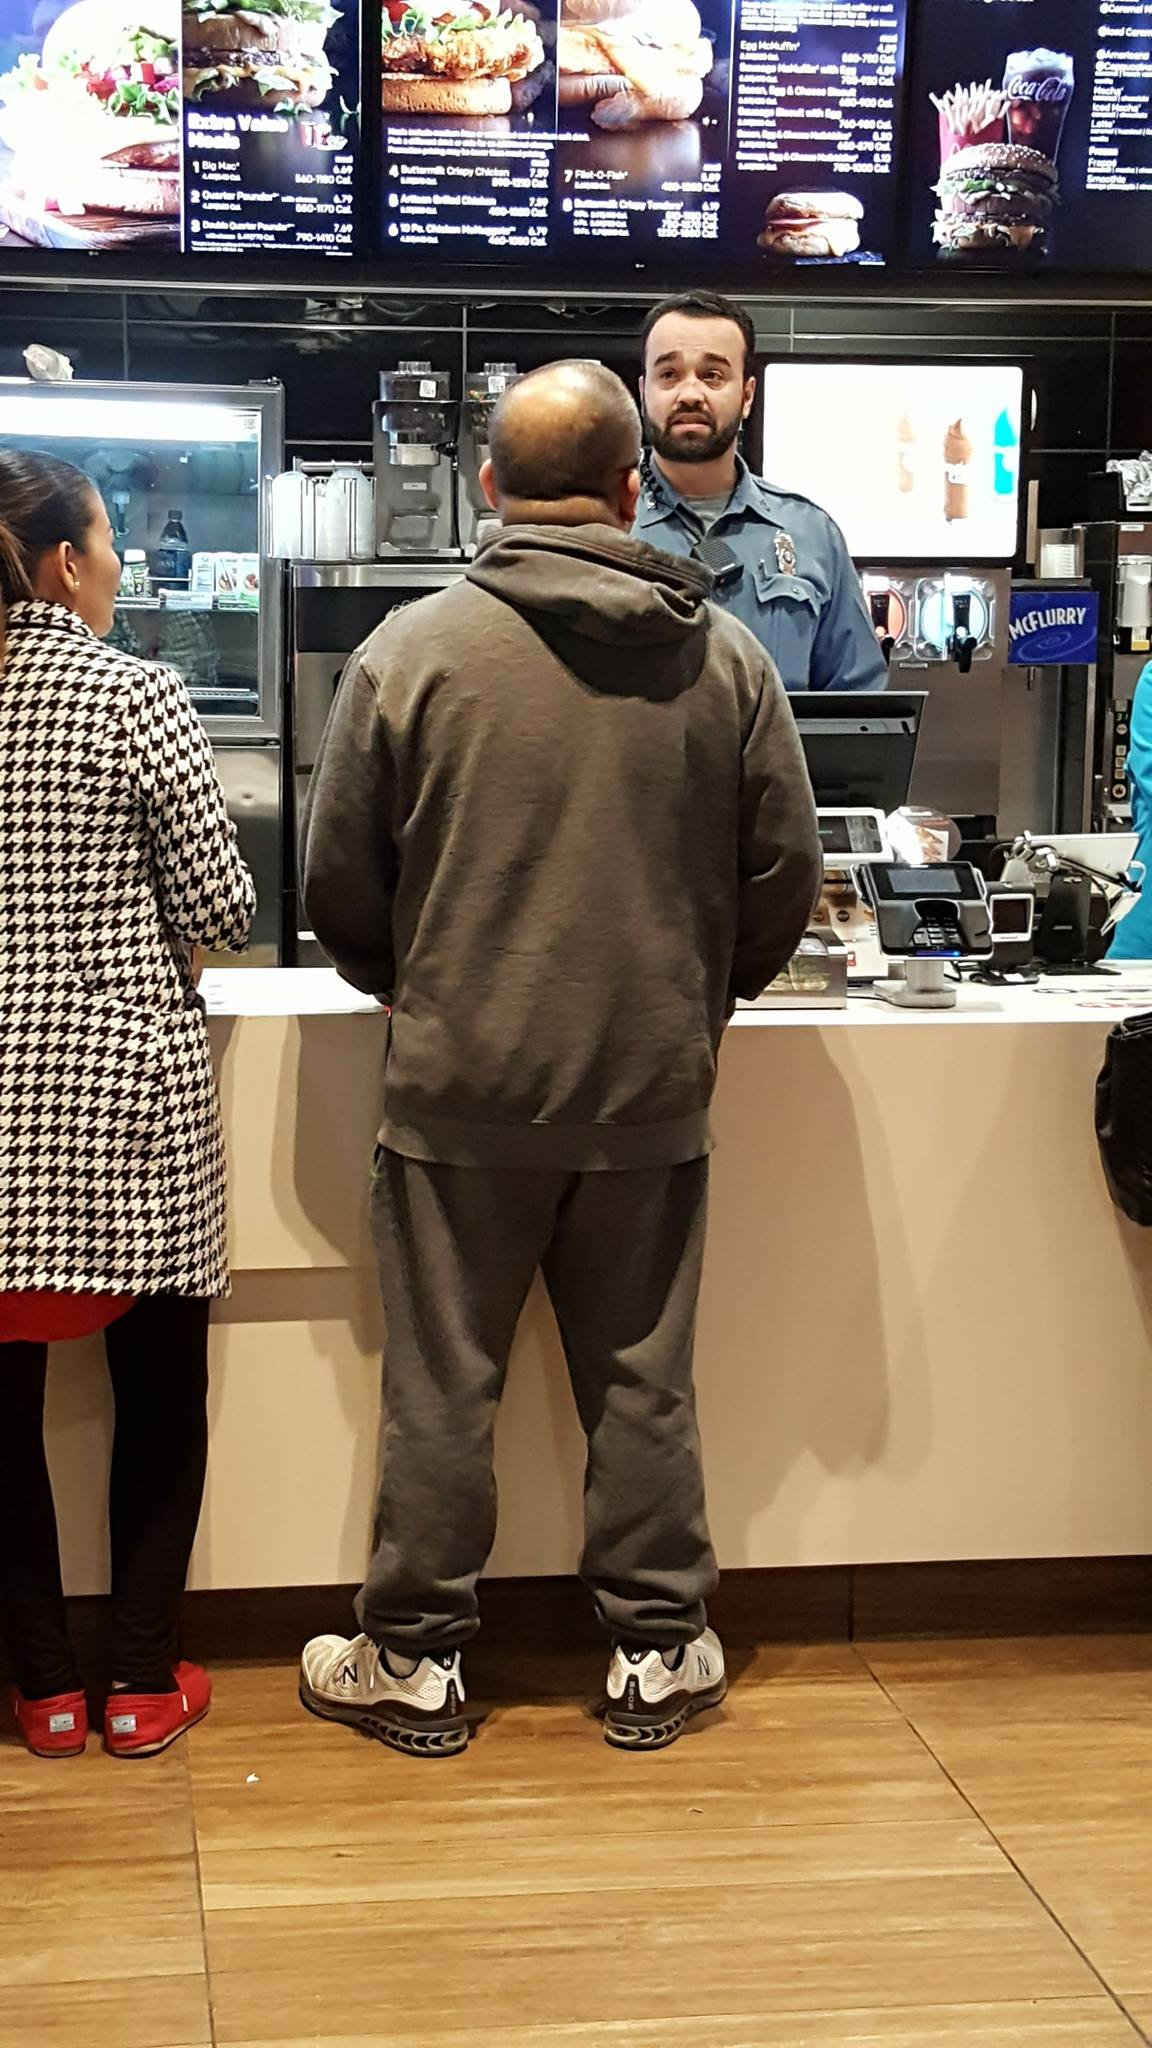 A photo of an off-duty Kansas City police officer taking orders at a local McDonald's has gone viral. (Kansas City Police Department)